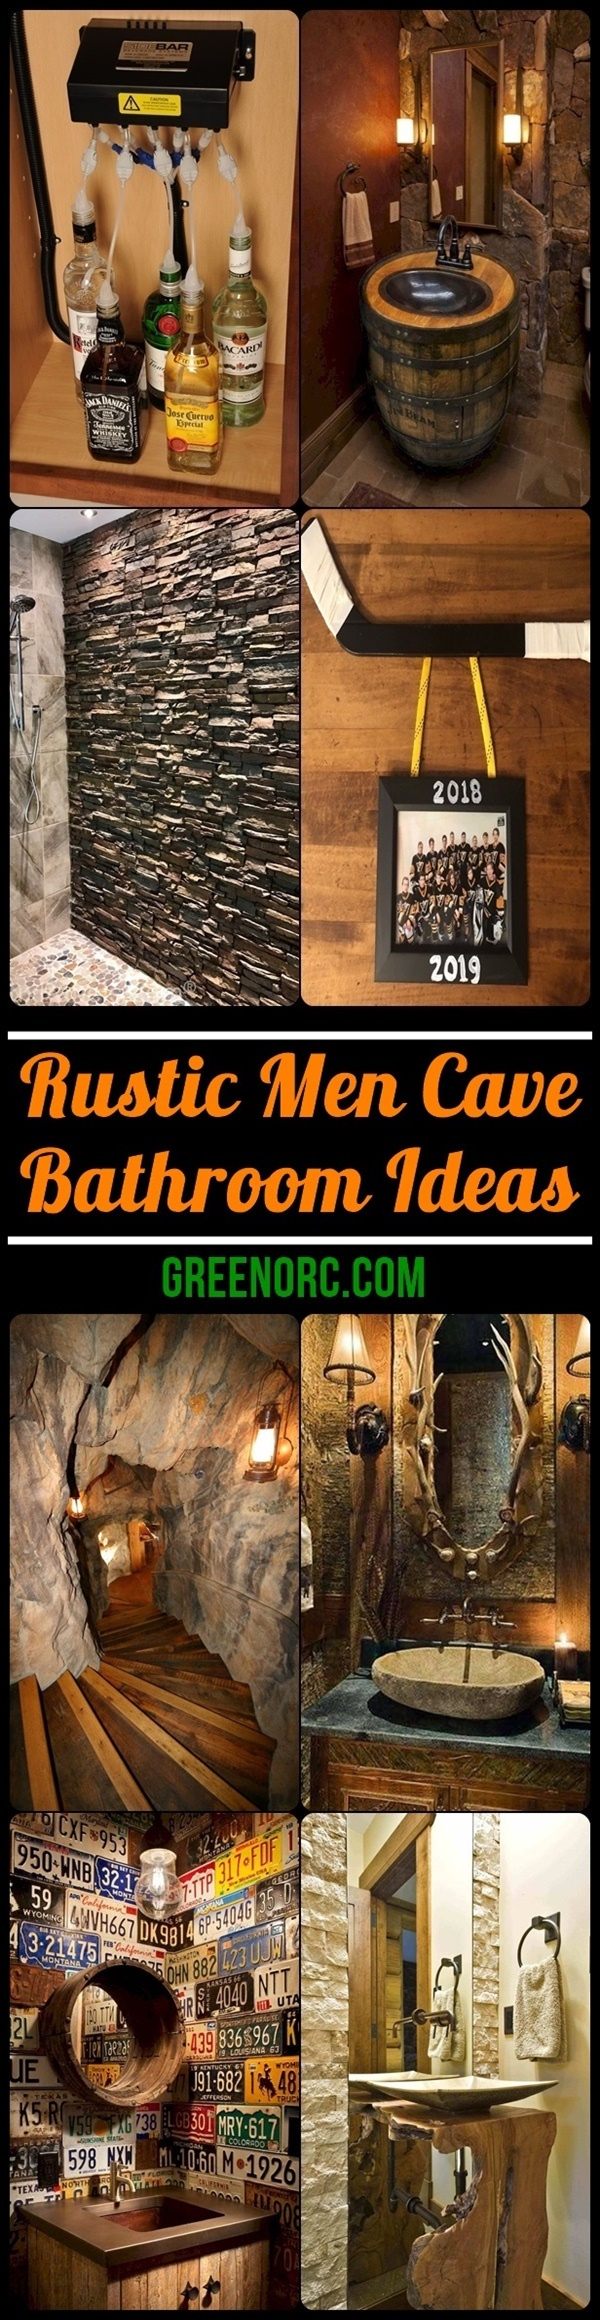 Rustic Men Cave Bathroom Ideas